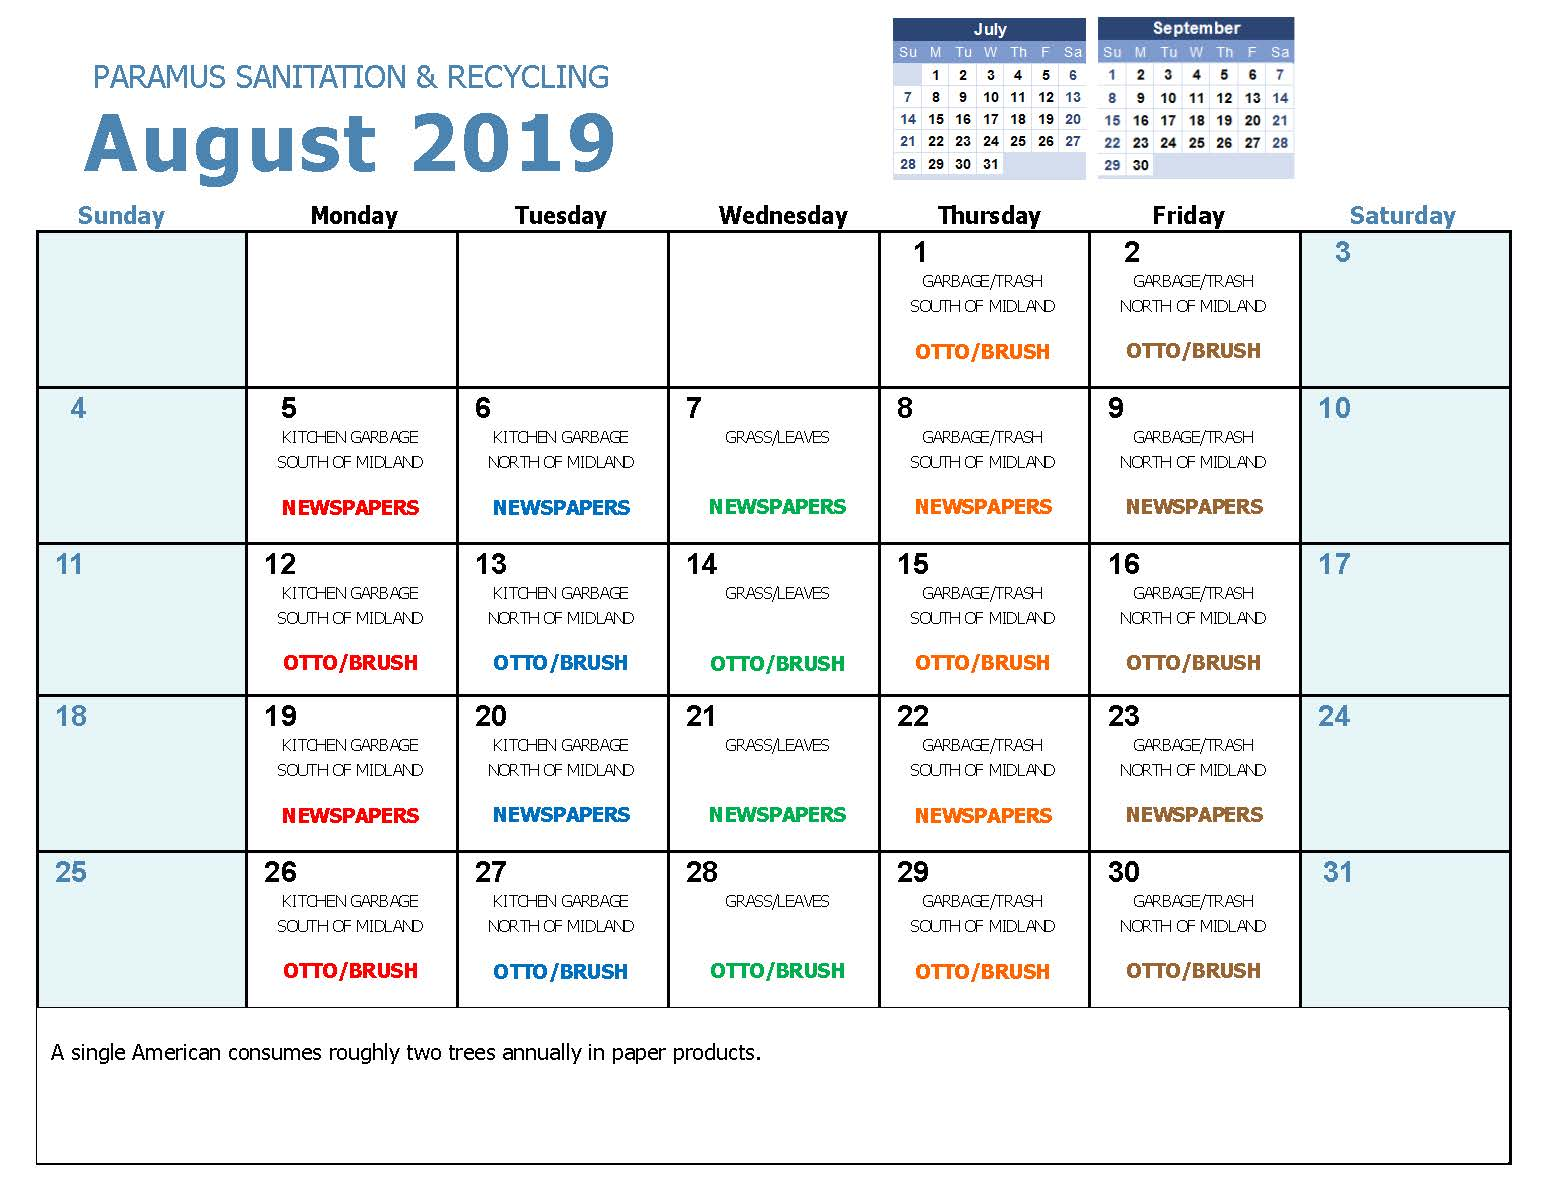 2019 August Household Hazadous Waste Collection